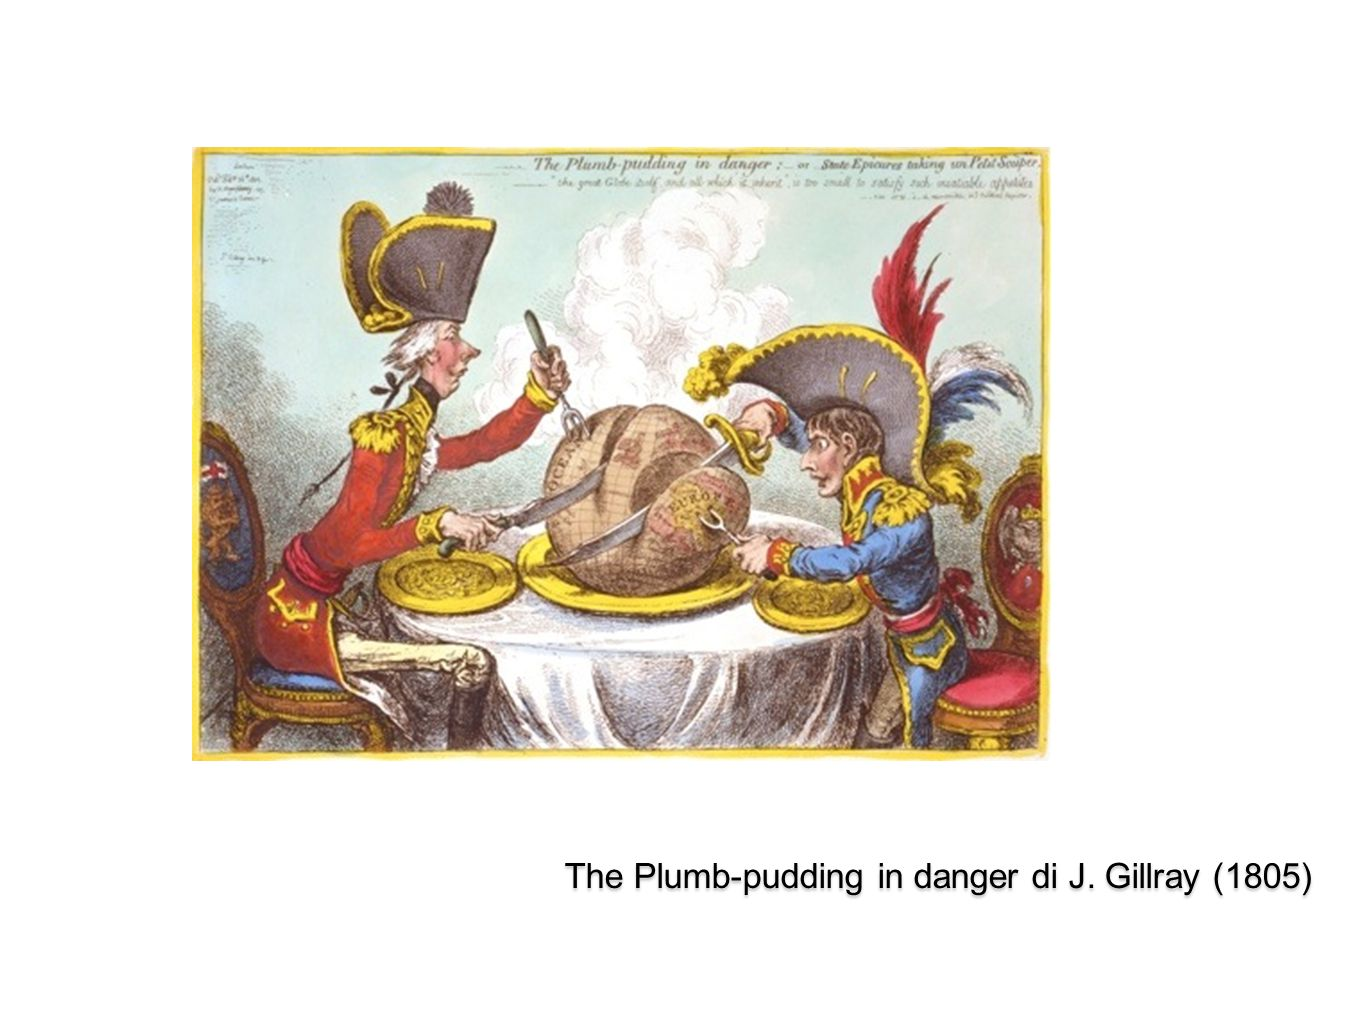 The Plumb-pudding in danger di J. Gillray (1805)